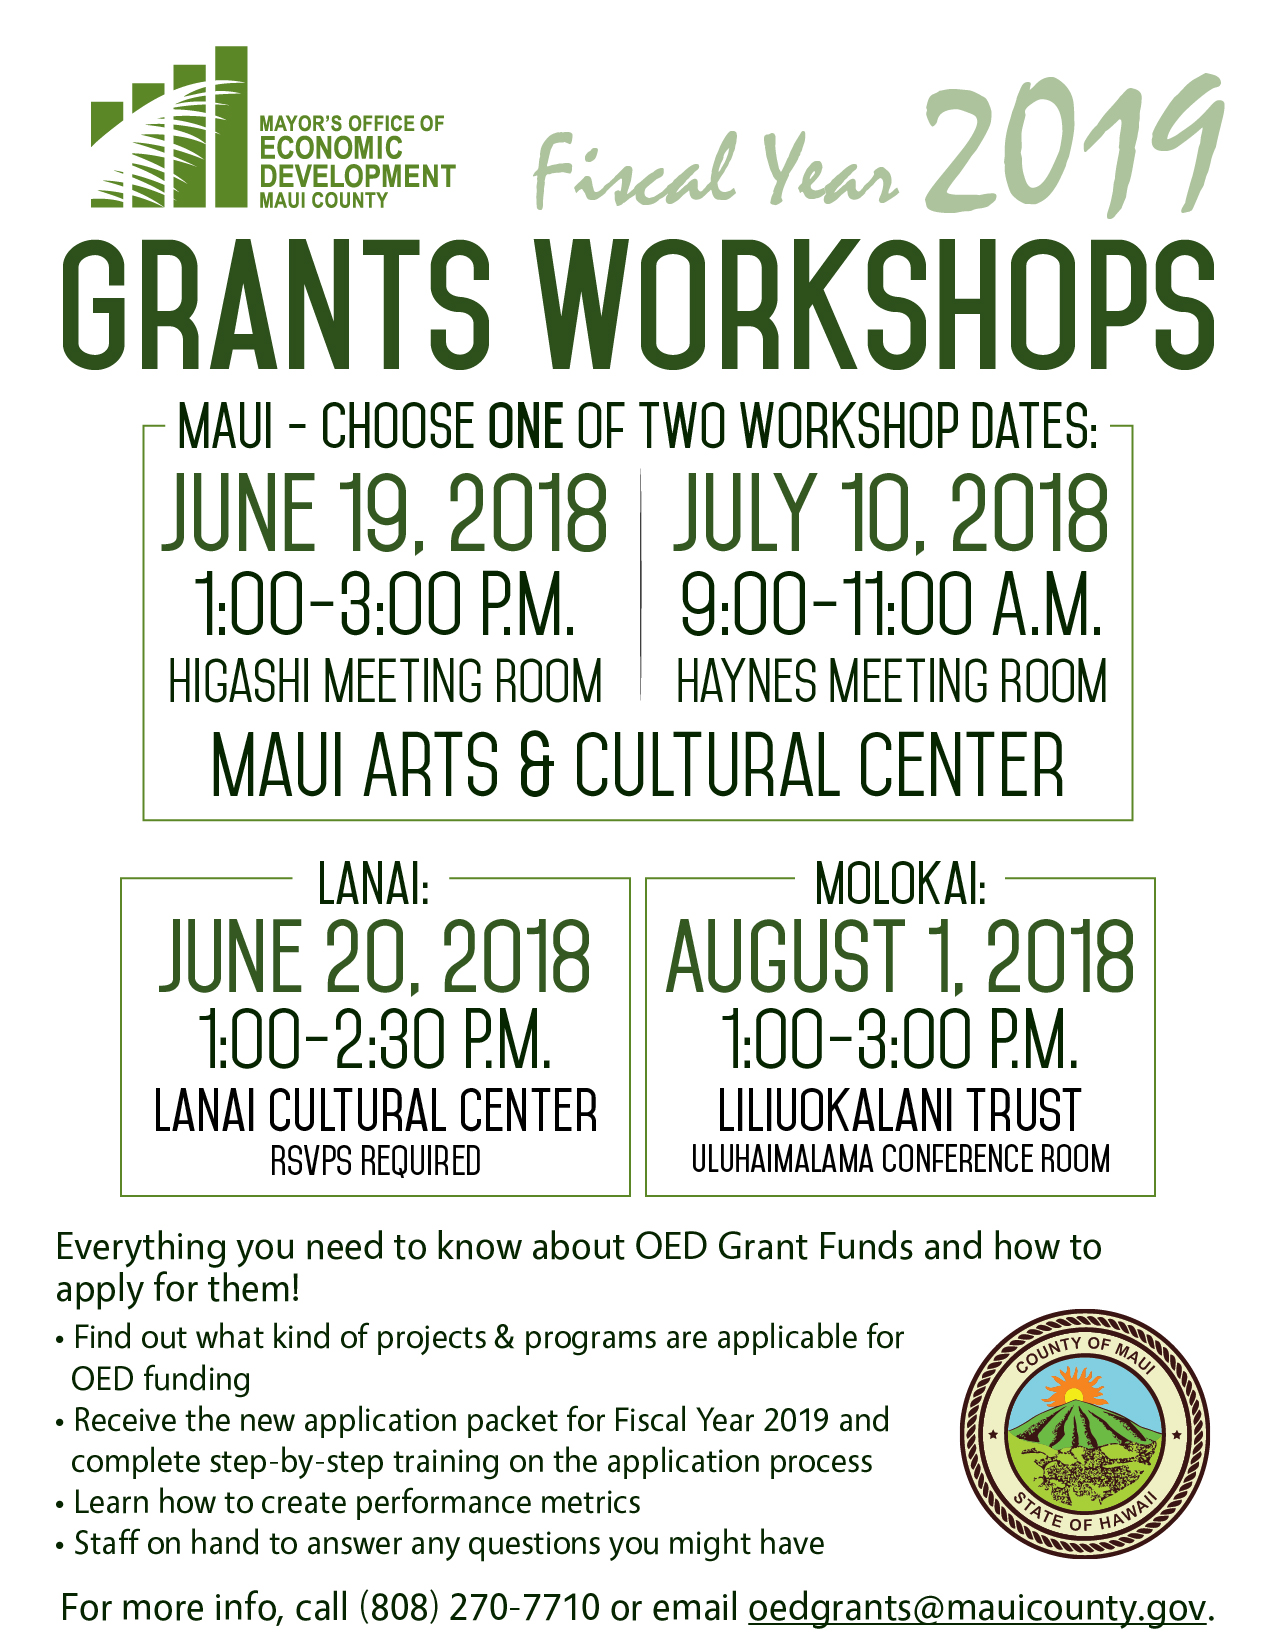 Office of Economic Development to Host Grant Workshop